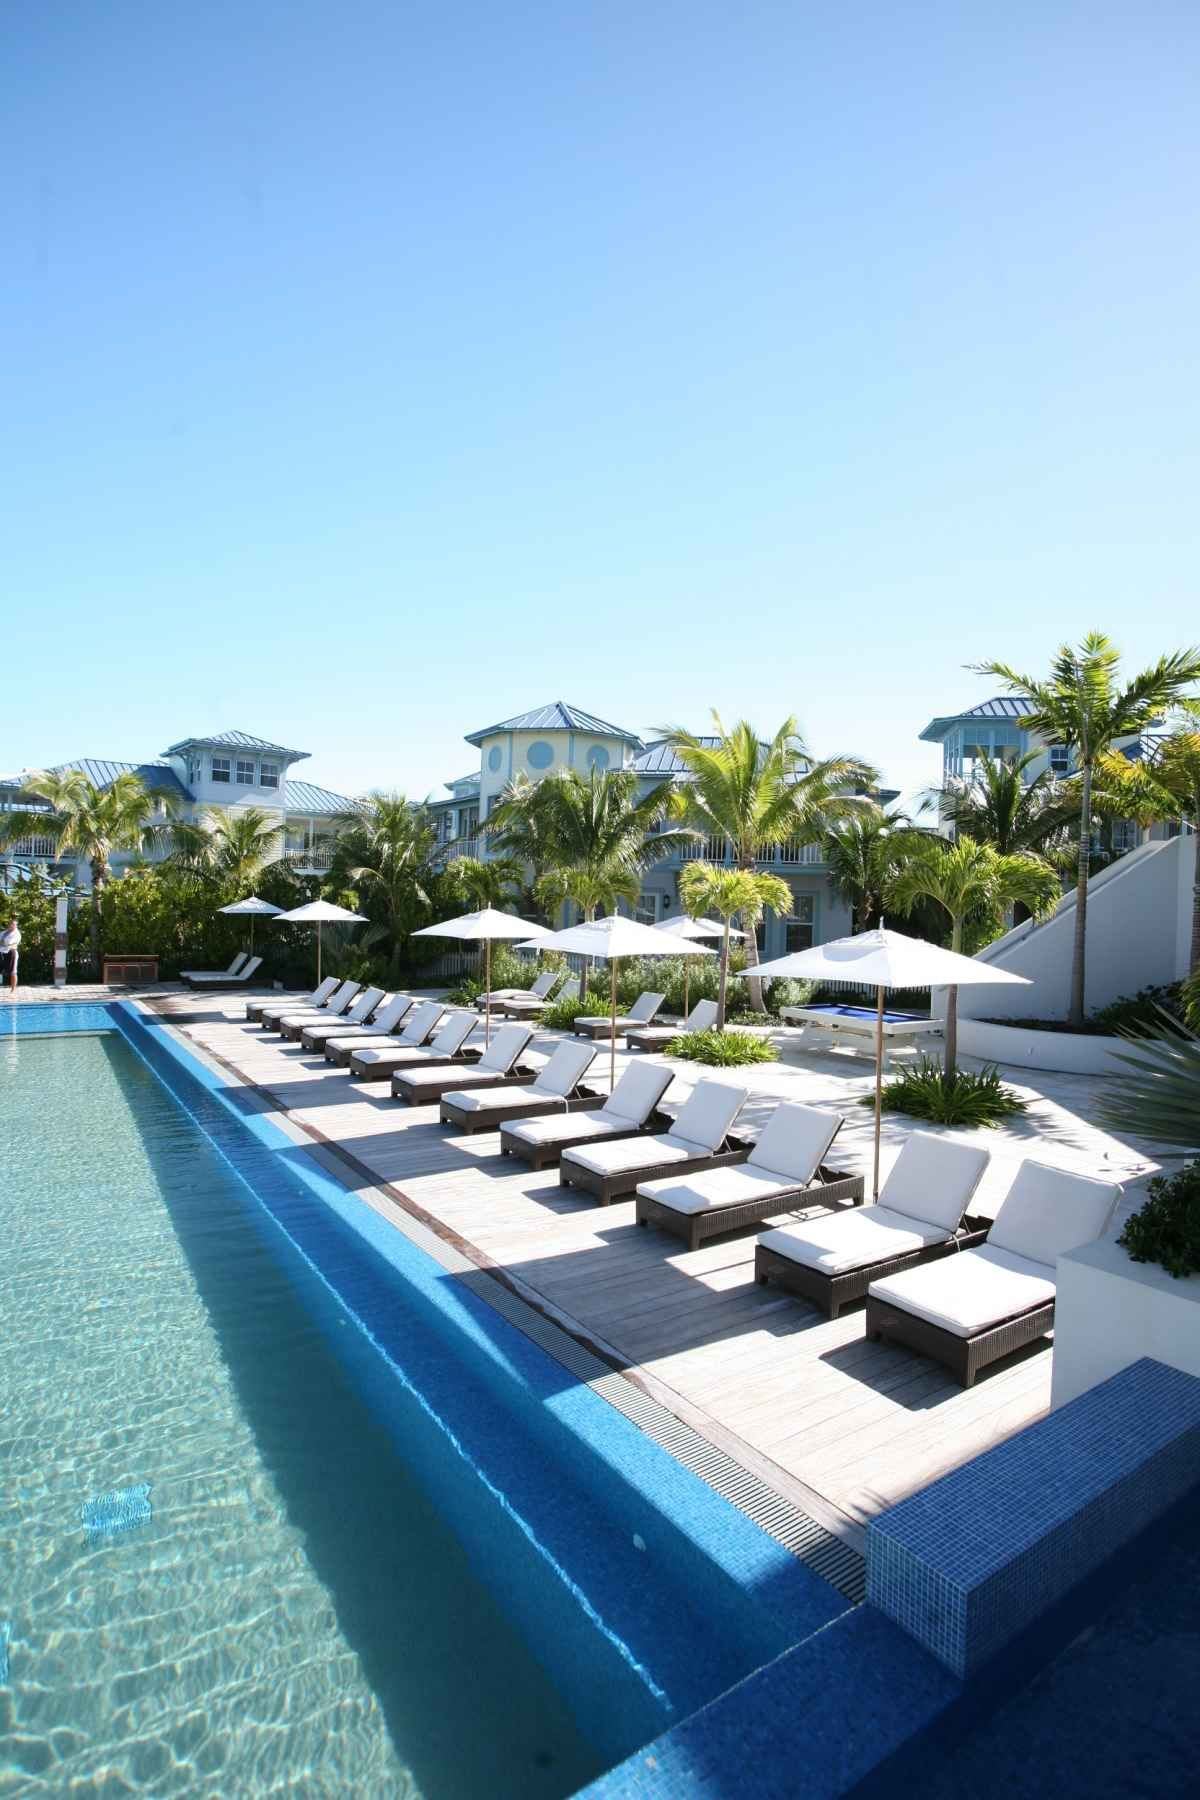 Best All-Inclusive Resorts In The Caribbean